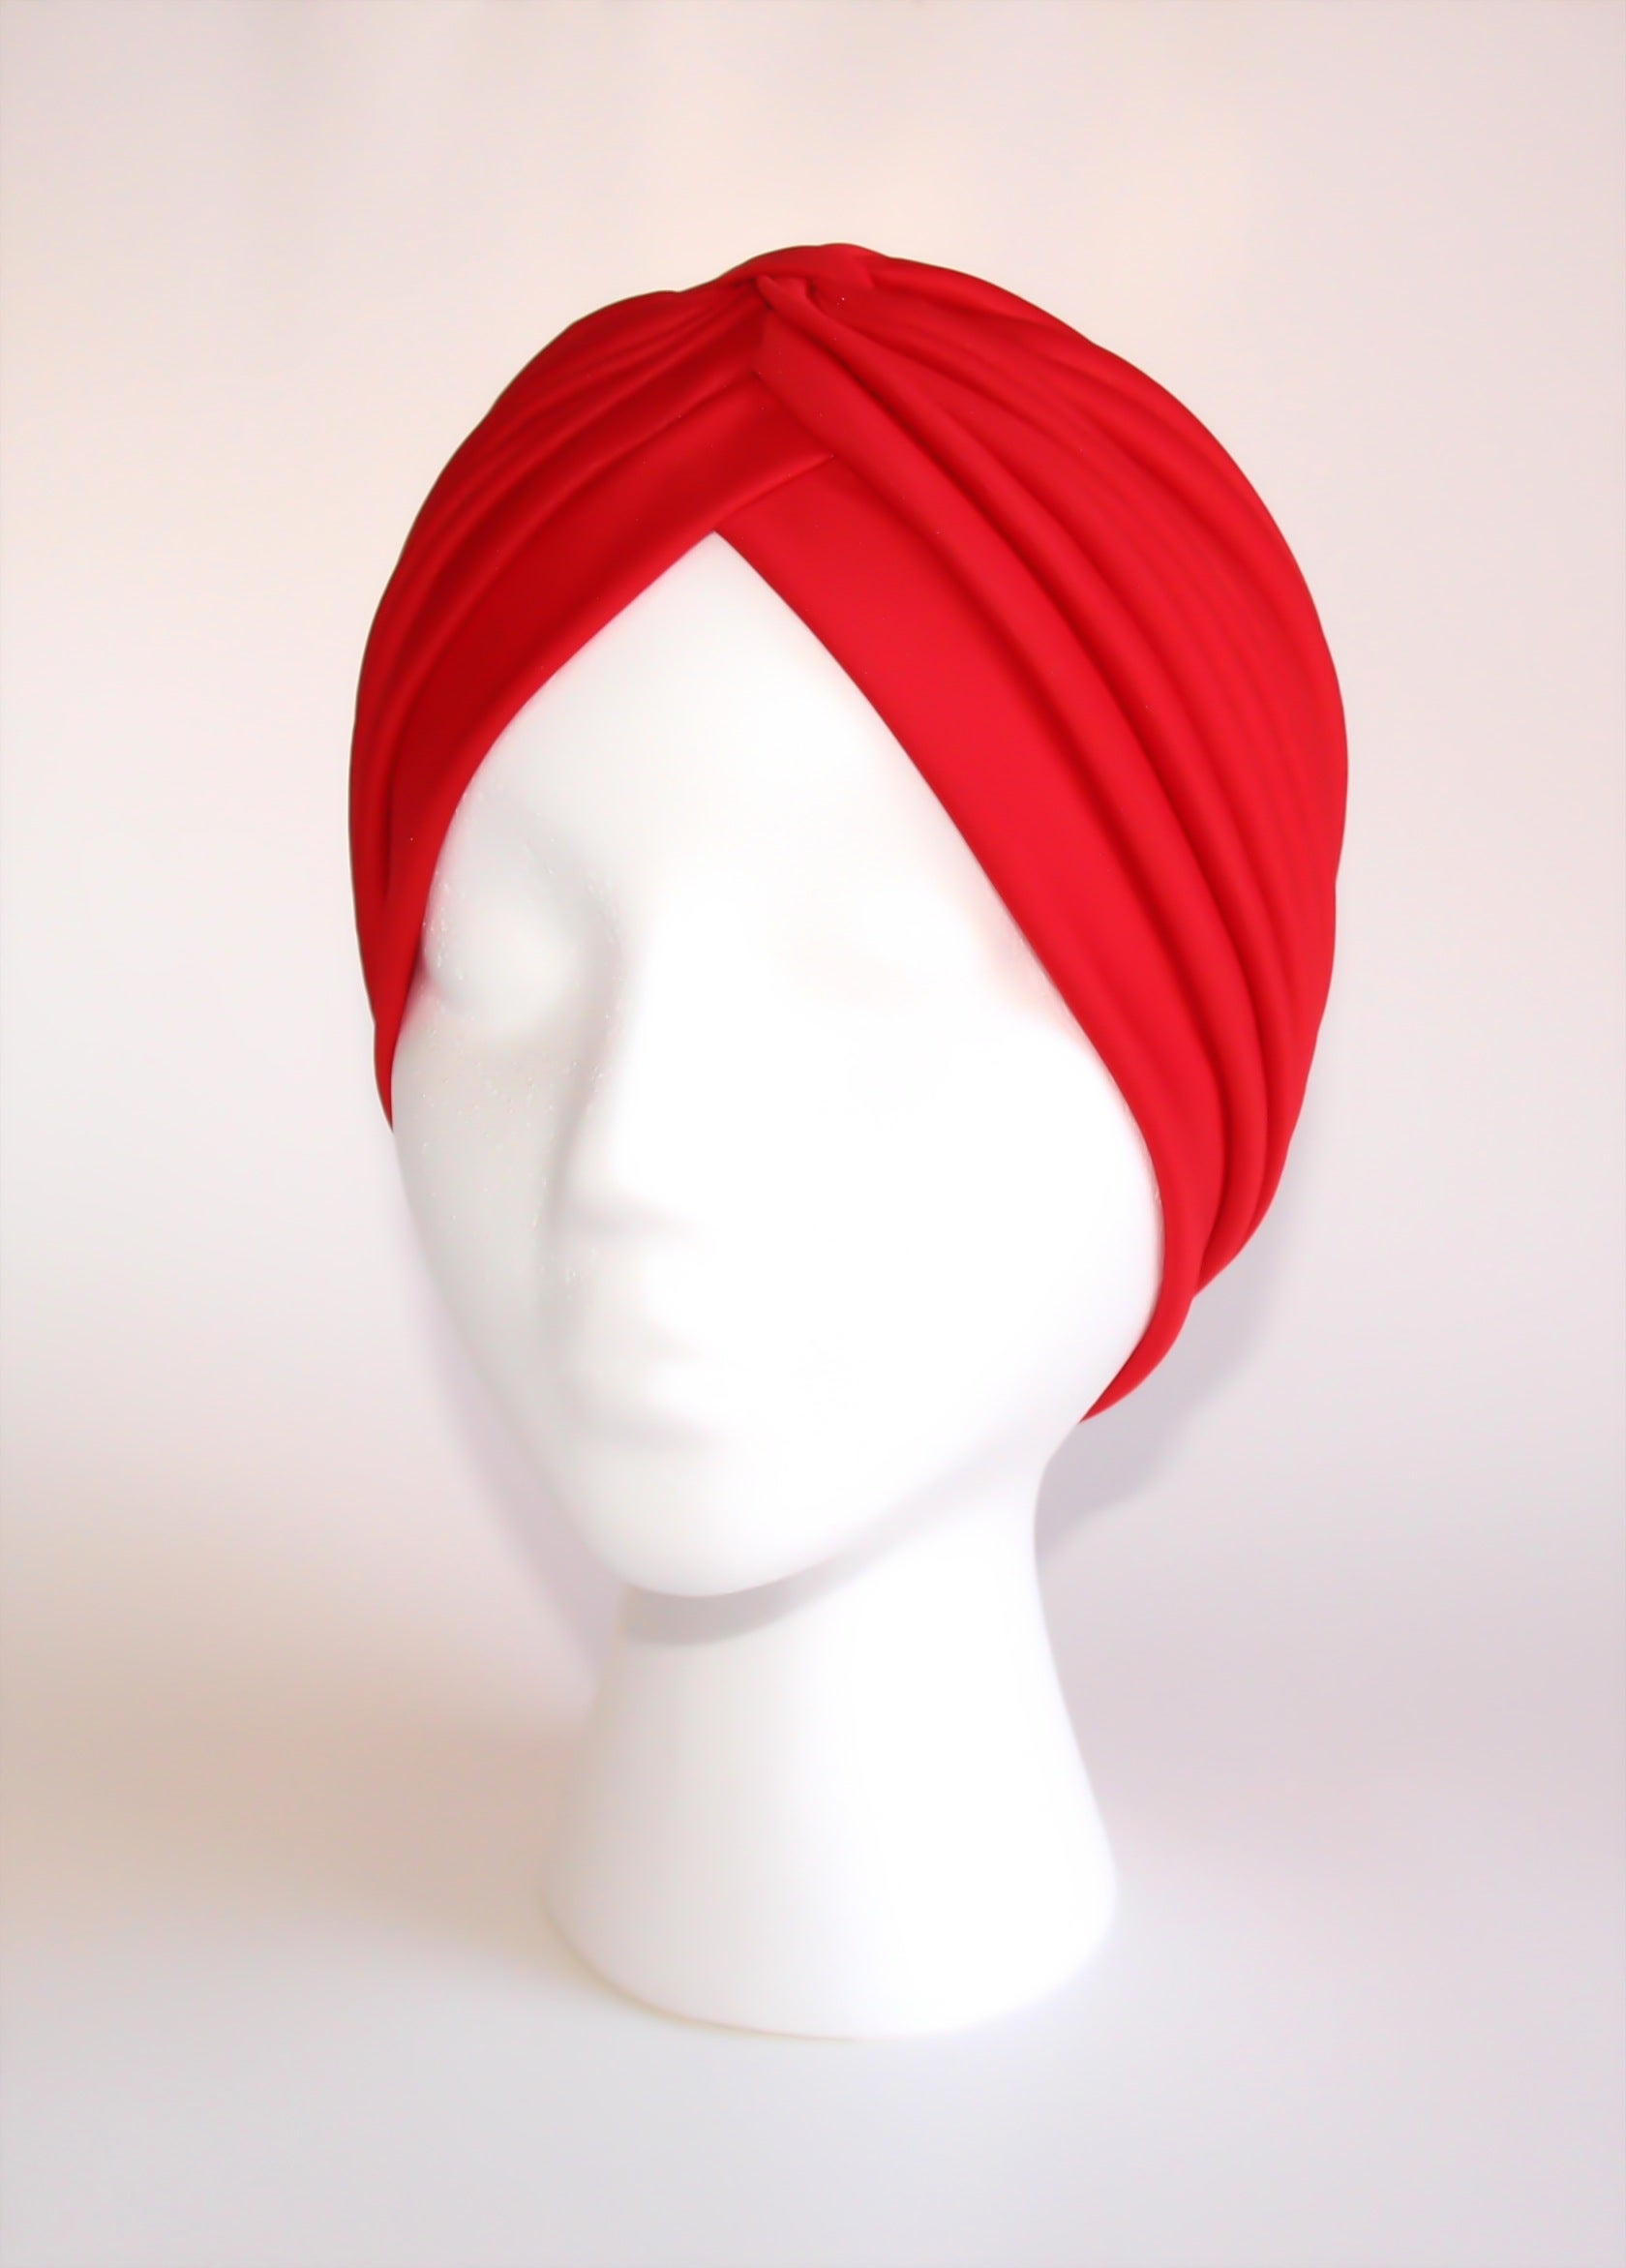 Fashionable Style Turbans And Accessories Online For Womans